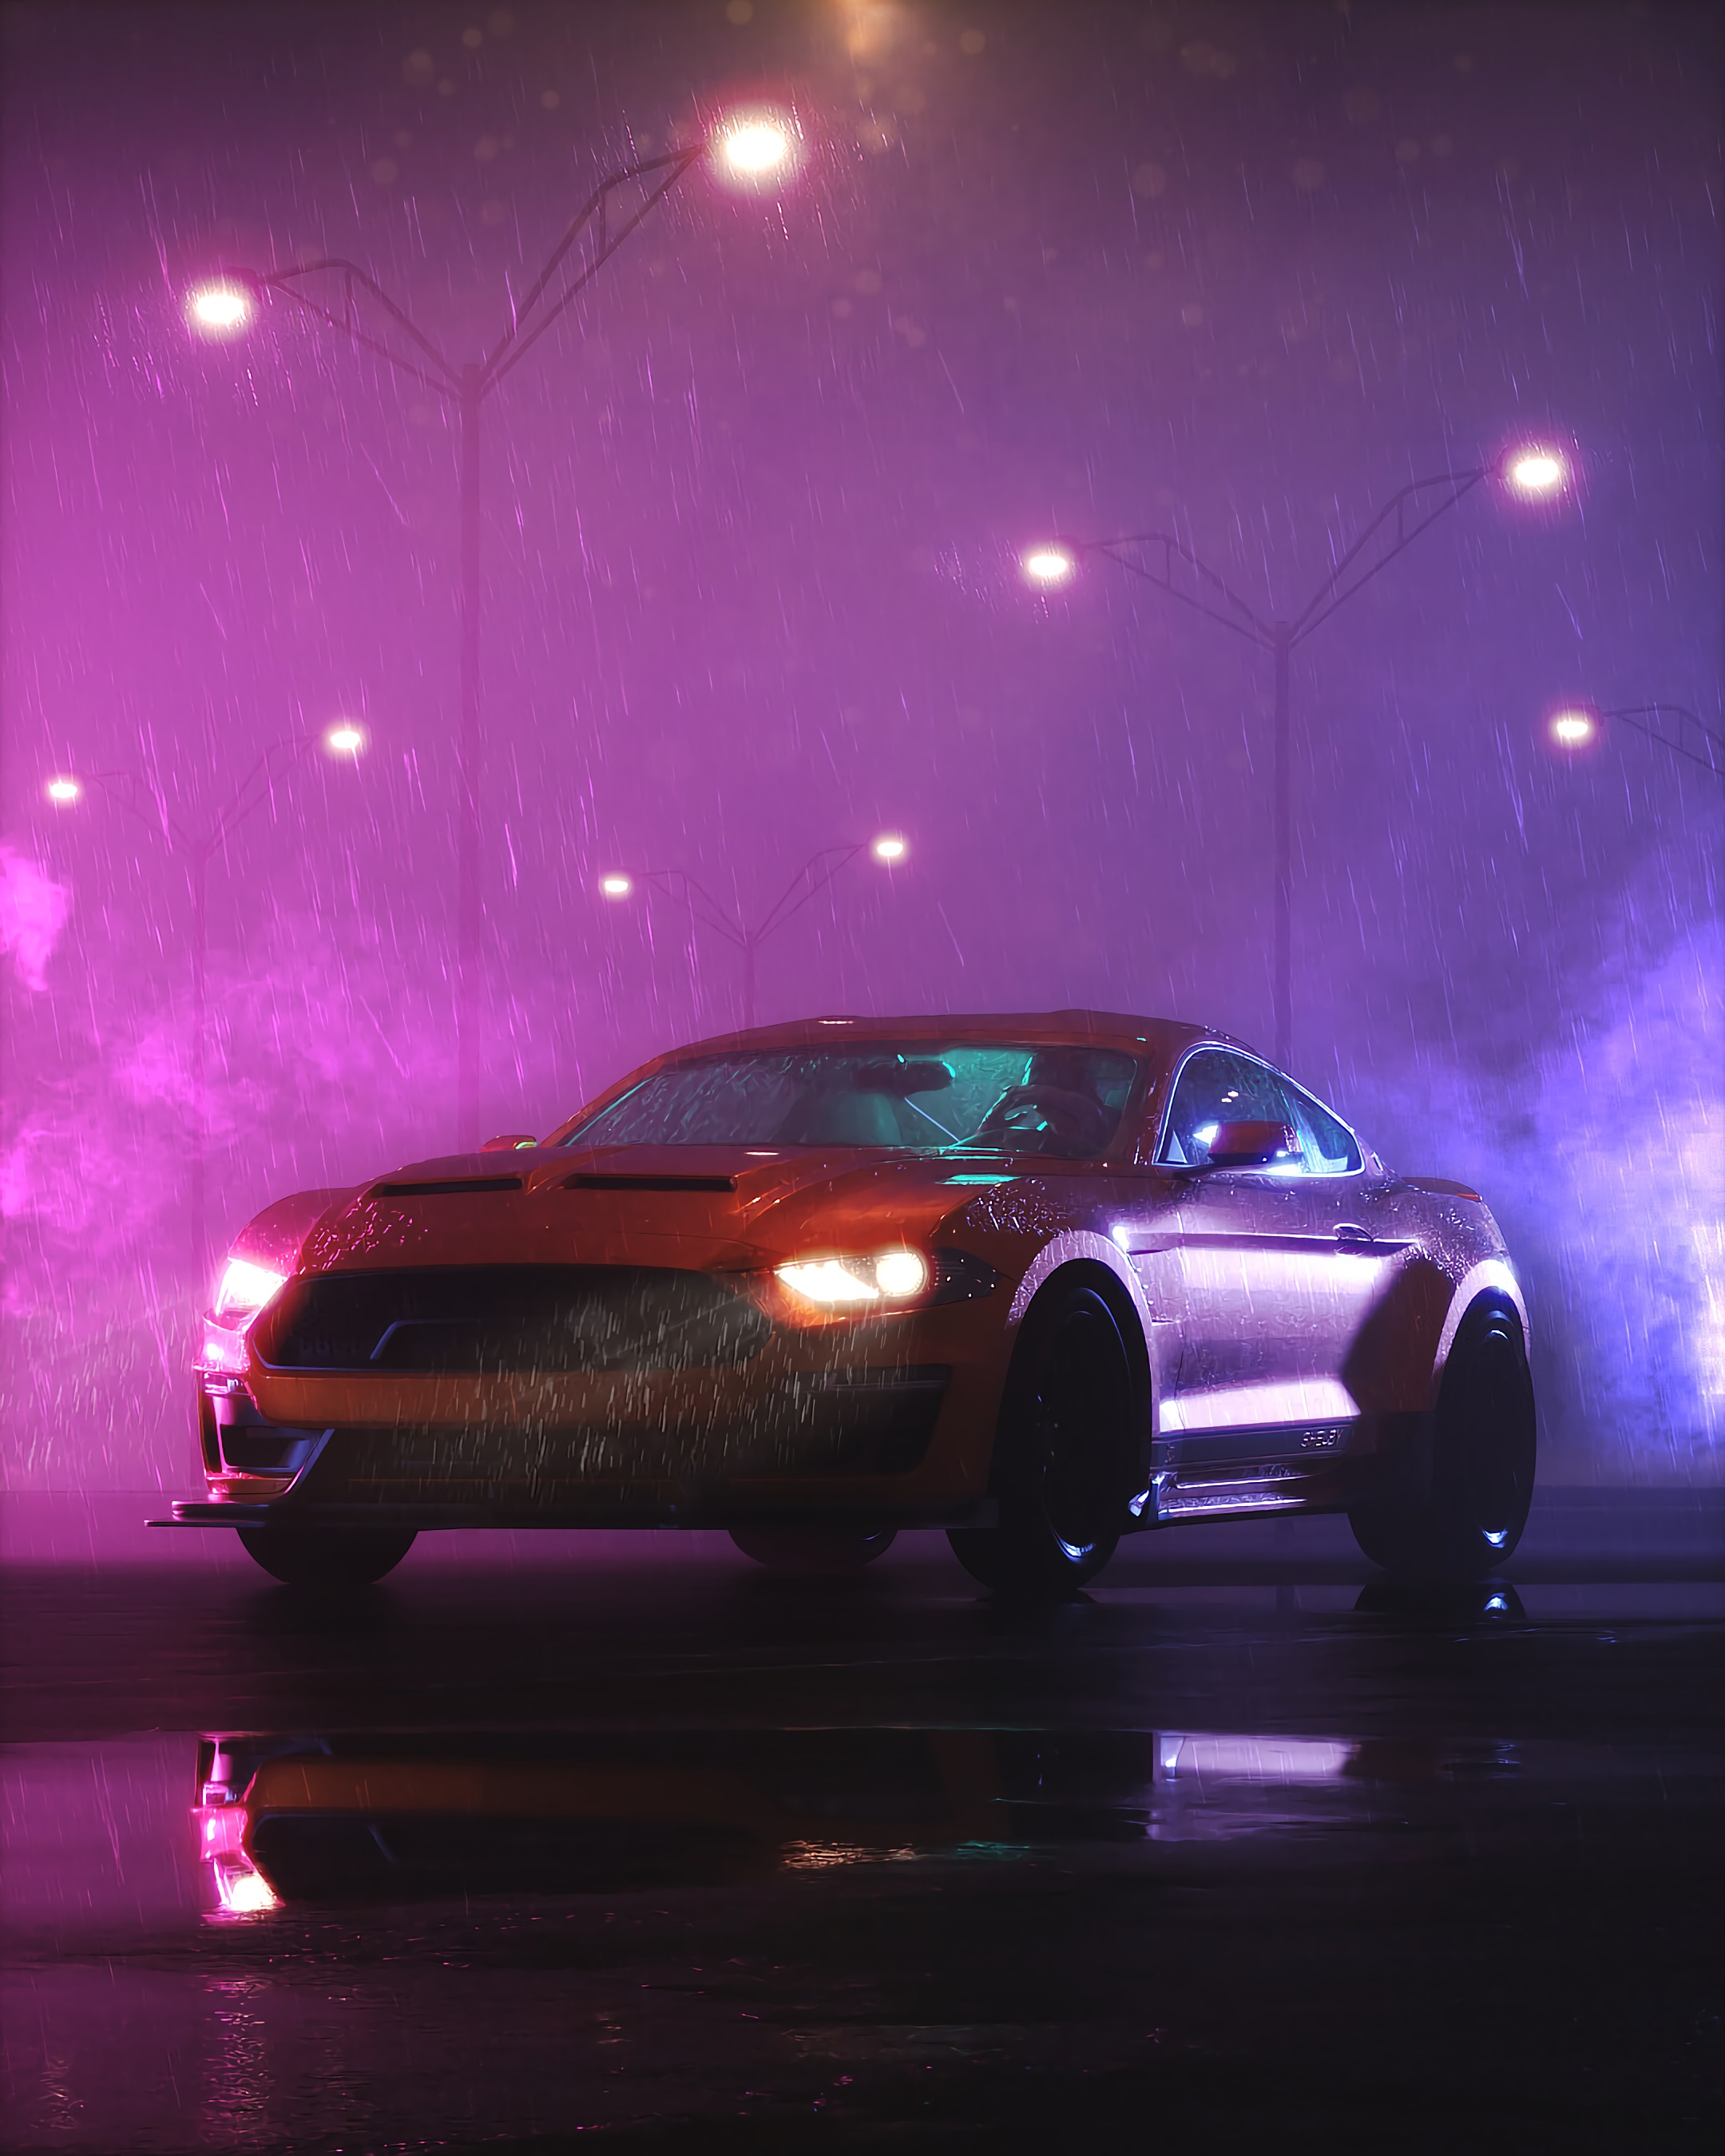 141778 Screensavers and Wallpapers Wet for phone. Download Sports, Rain, Night, Cars, Dark, Wet, Car, Machine, Sports Car pictures for free